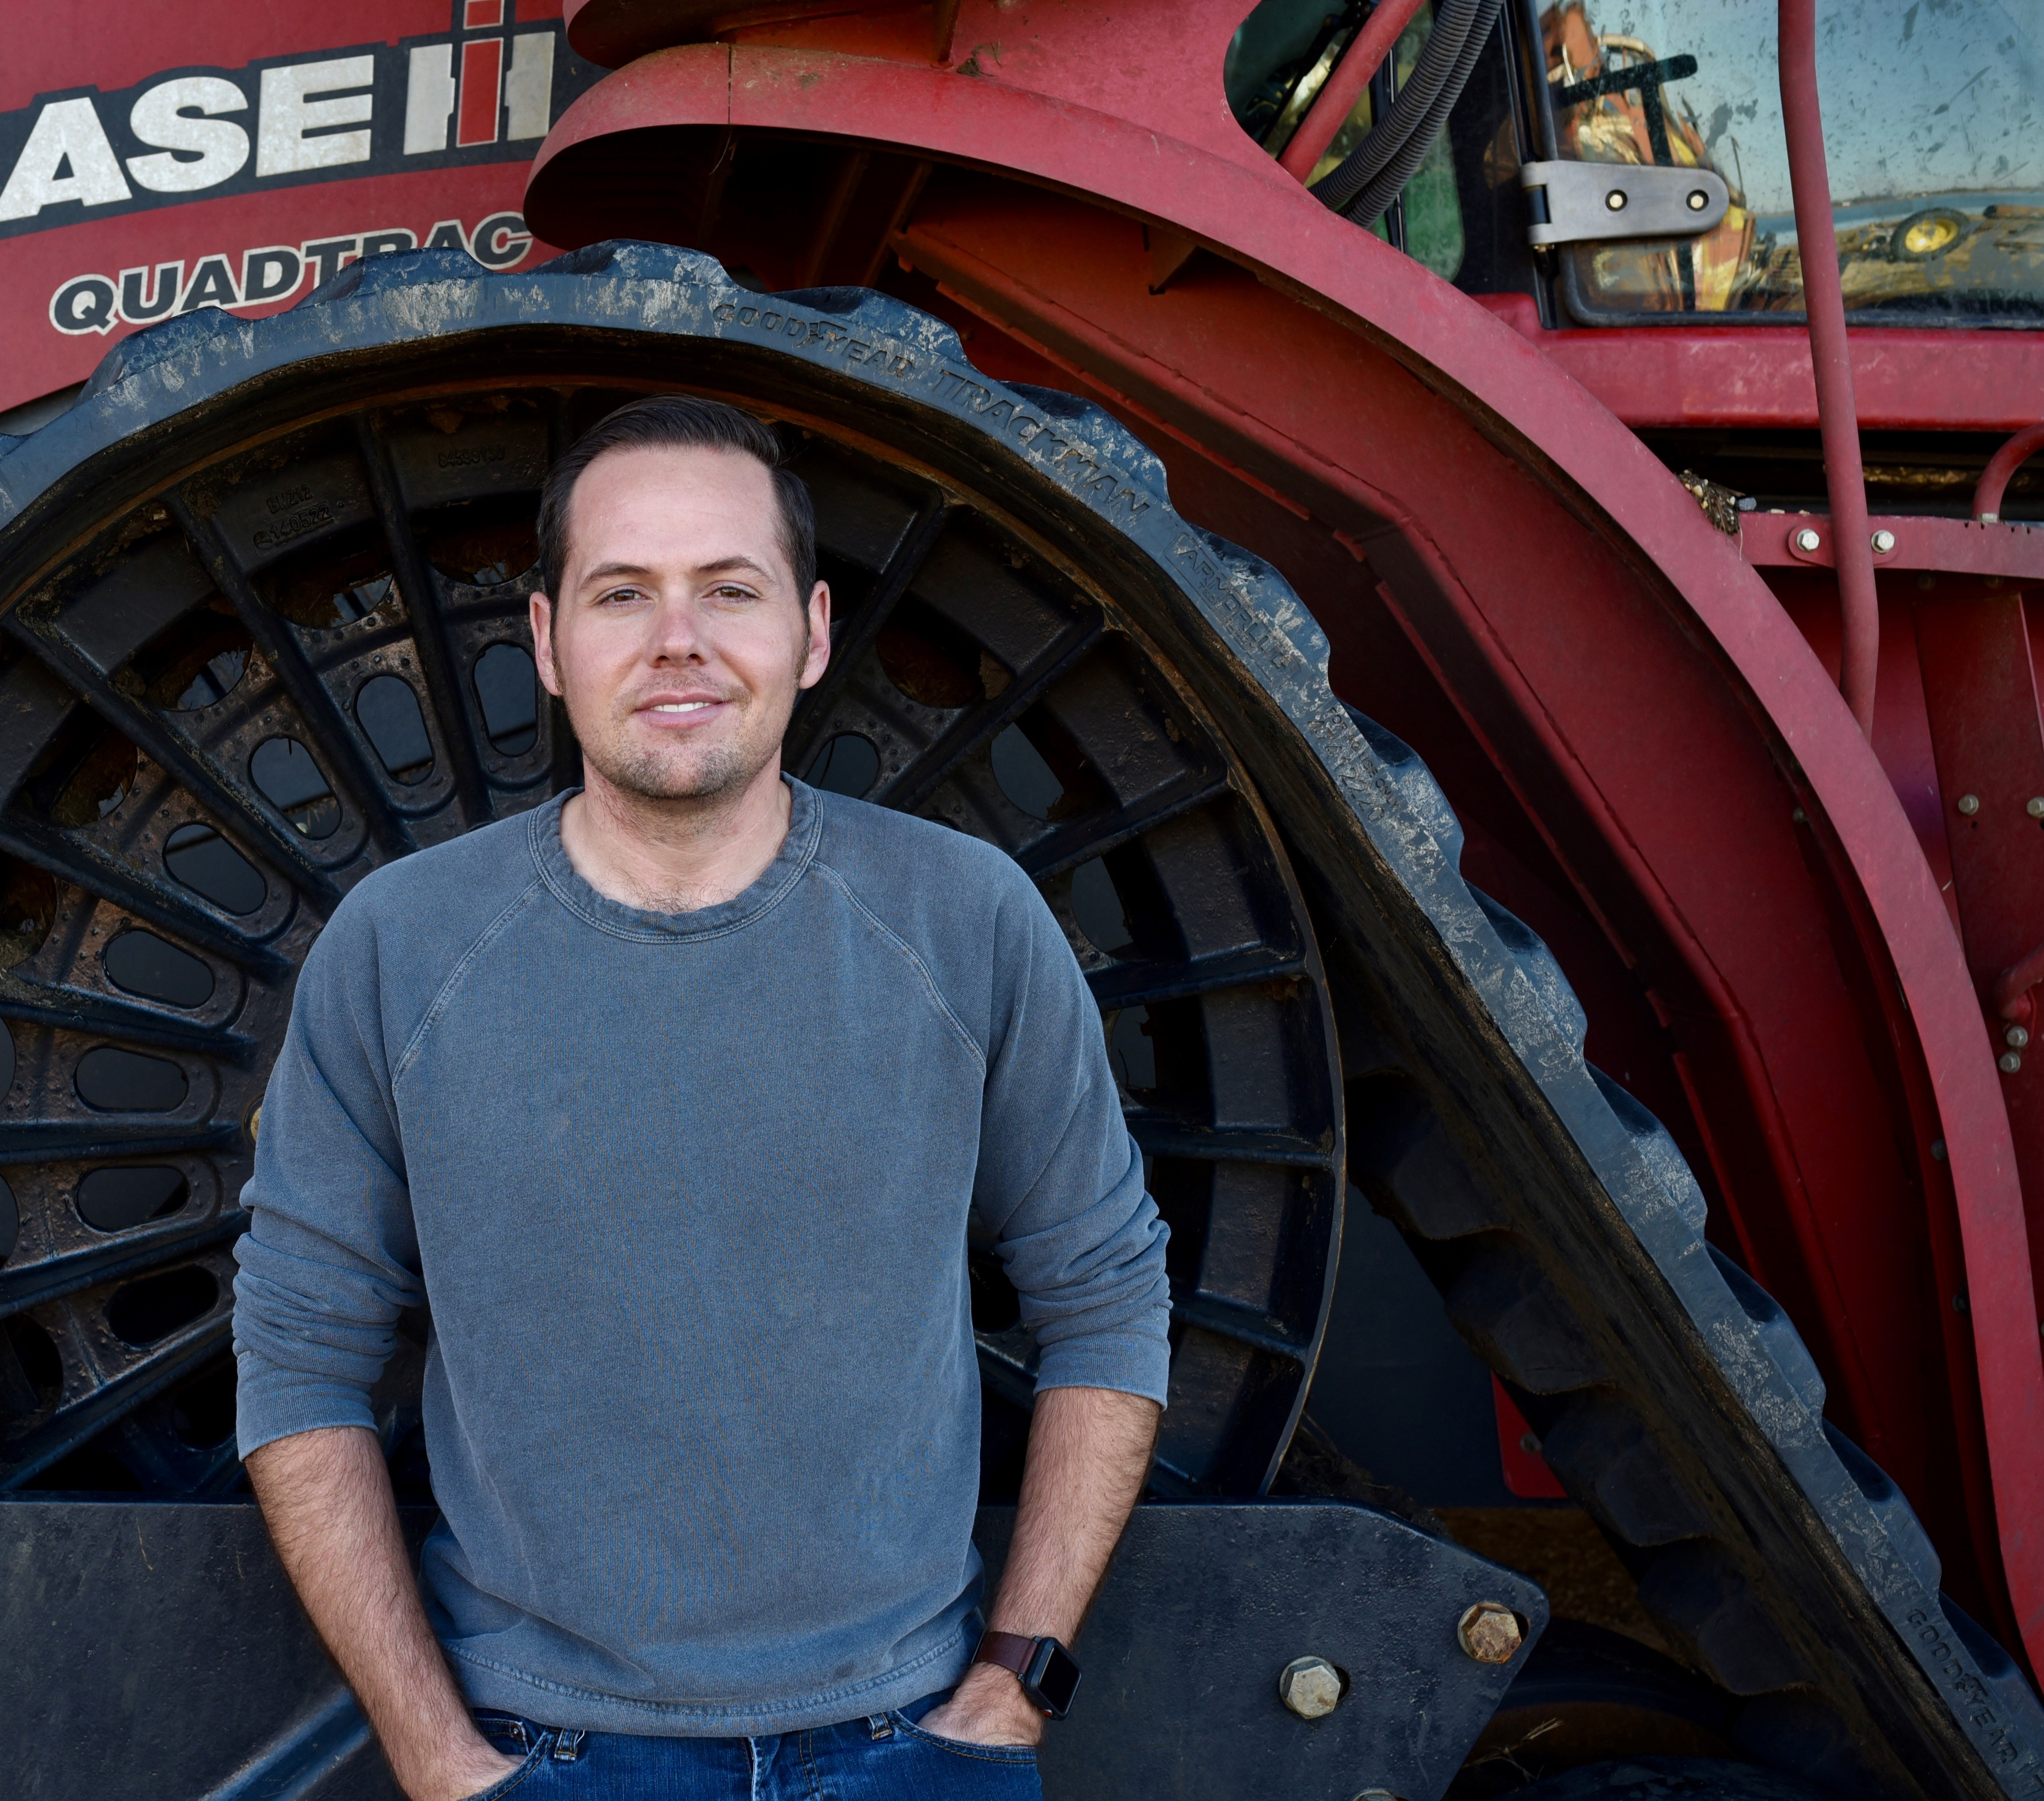 Young white male wearing gray sweatshirt standing in wheel well of Case combine